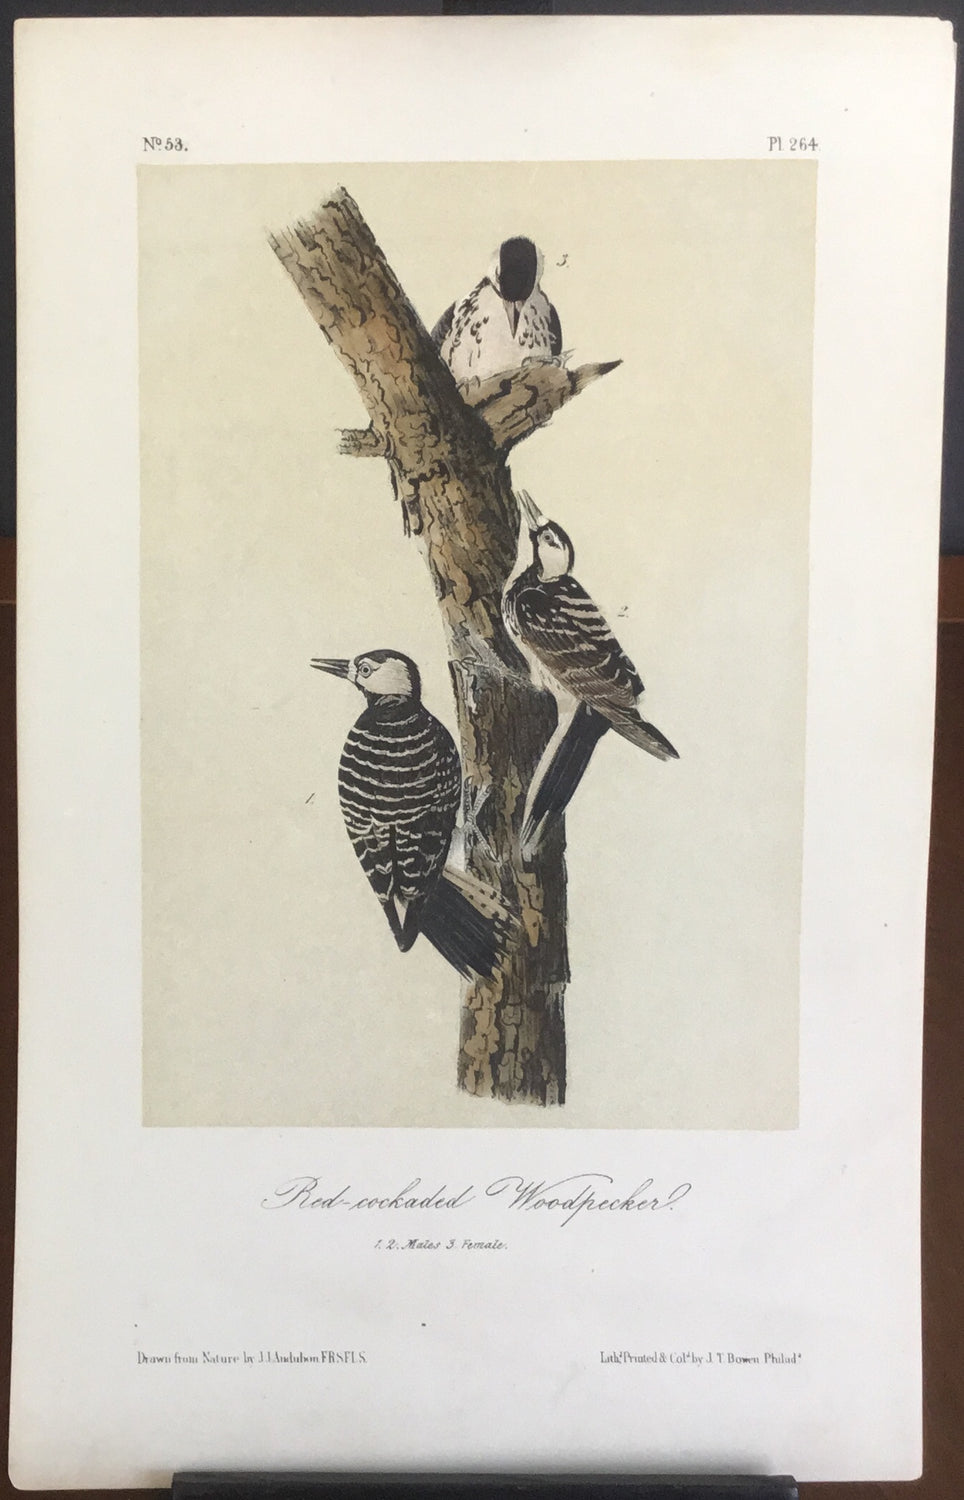 Audubon Octavo Red-cockaded Woodpecker , plate 264, uncolored test sheet, 7 x 11